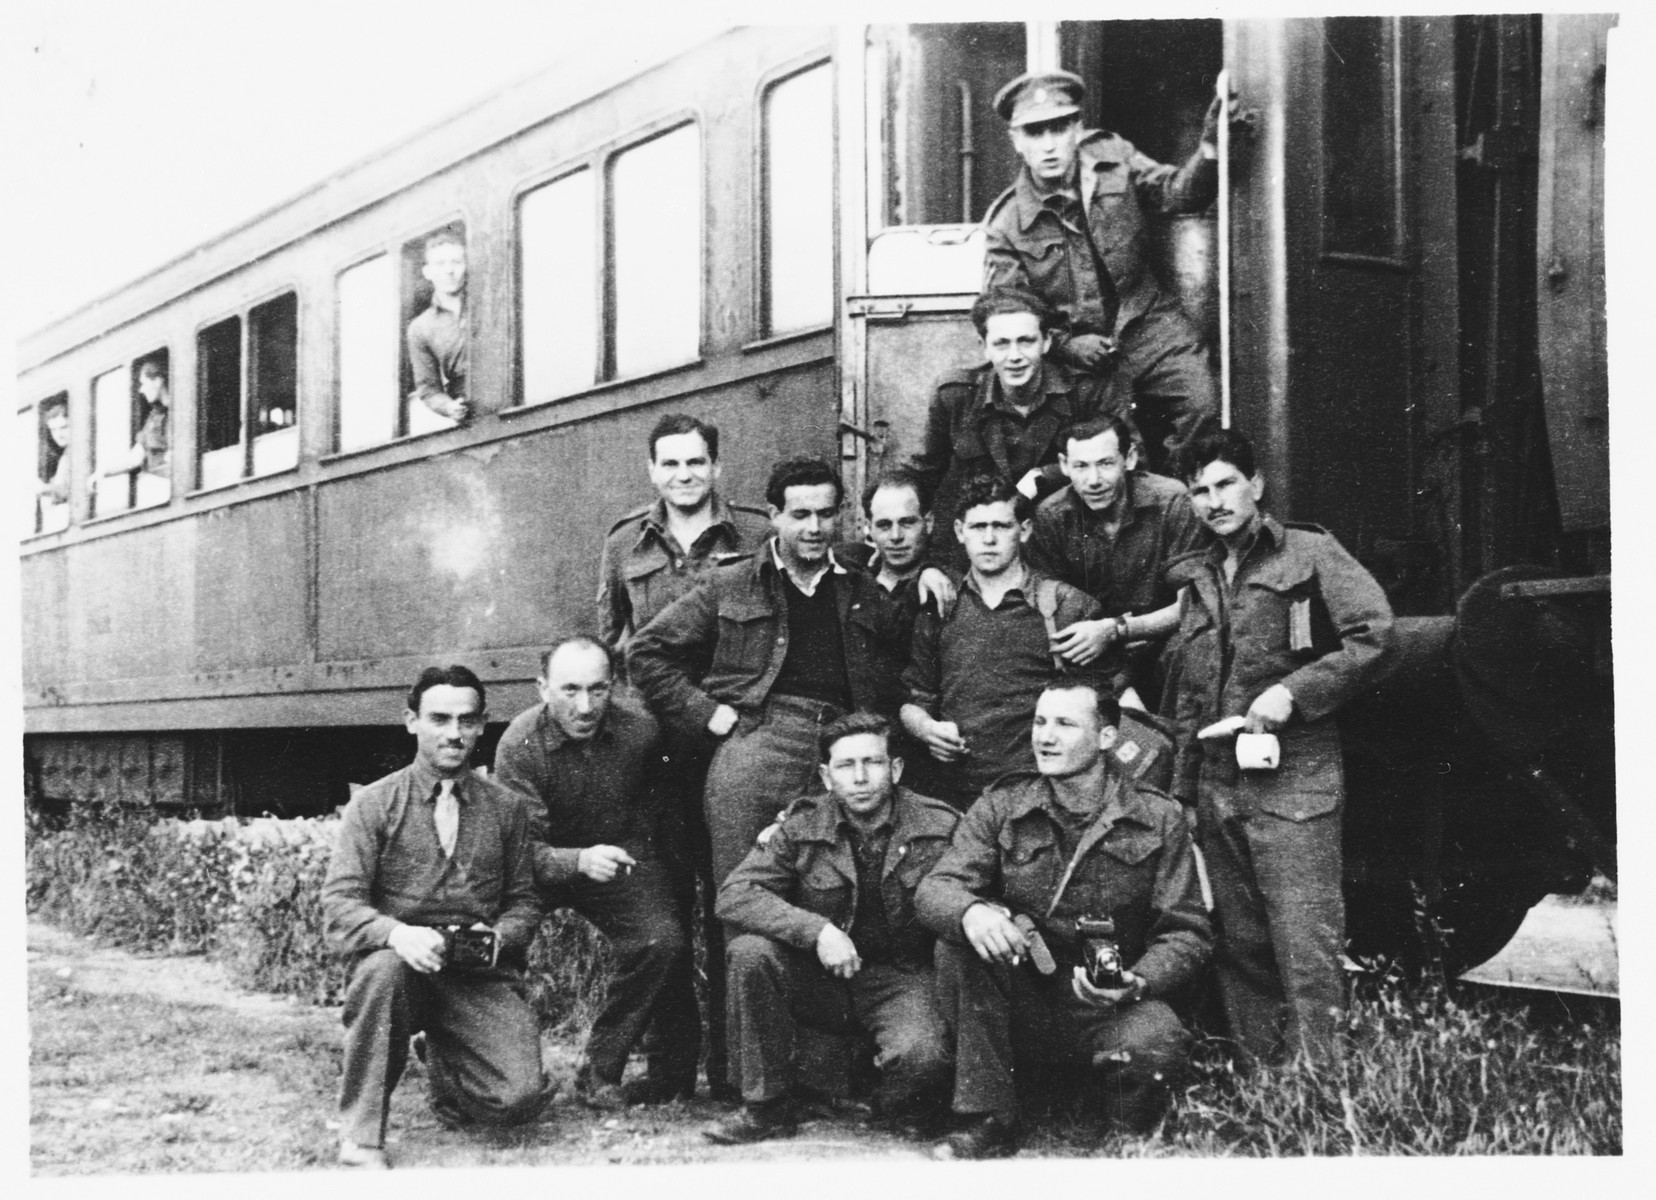 Arthur Einhorn and other Jewish Brigade soldiers board a train from Bornem to Toulon on their way to Israel following the British decision to disband the Brigade.